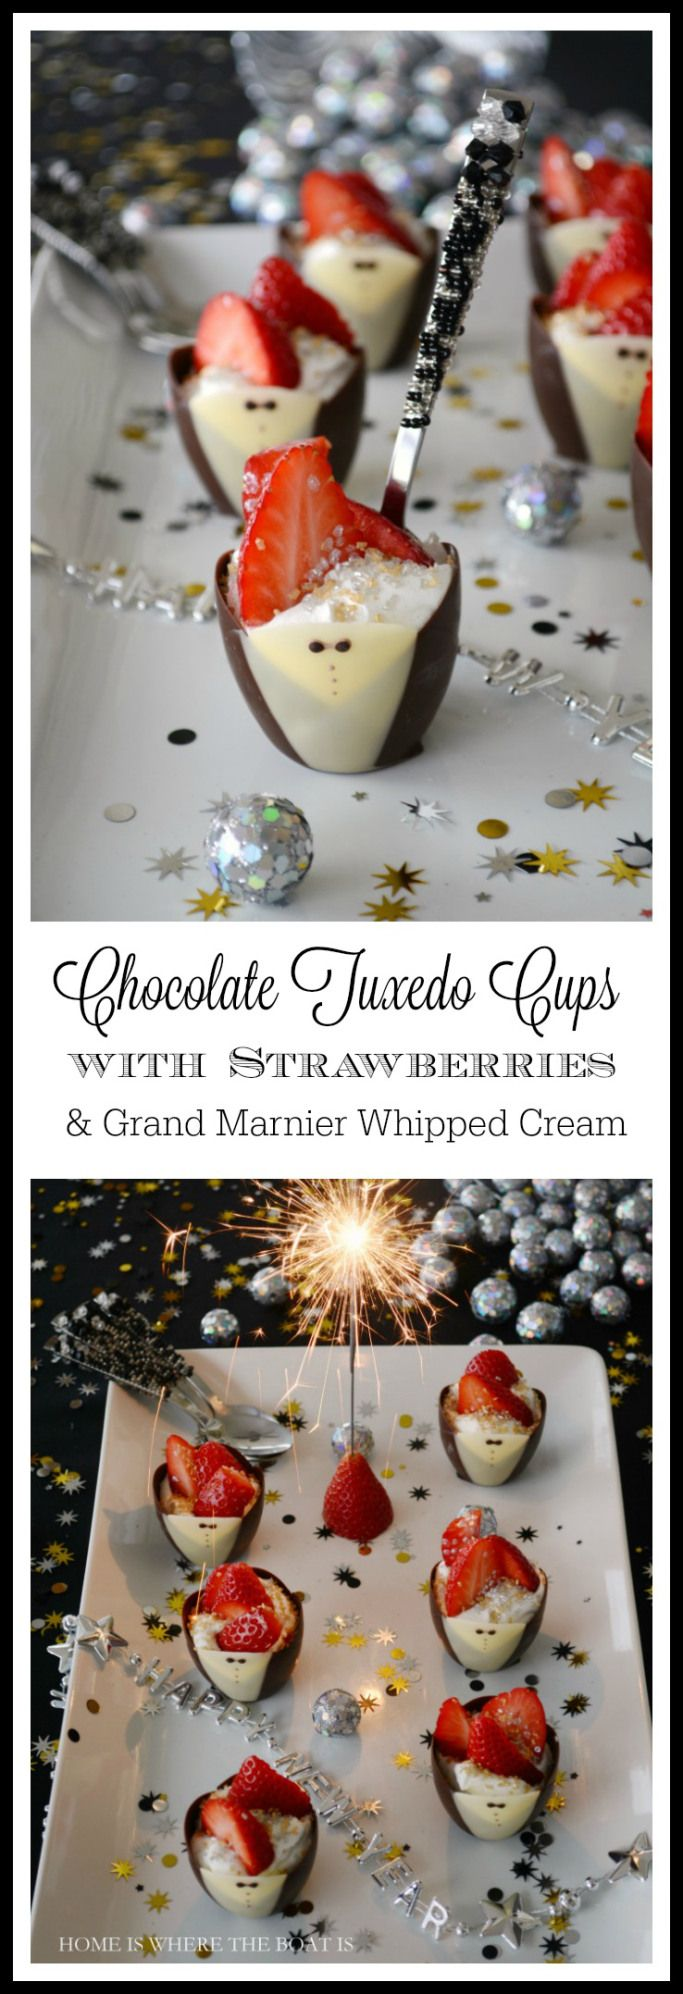 Chocolate Tuxedo Cups with Strawberries and Grand Marnier Whipped Cream! A festive, sweet bite for New Year's Eve! #dessert